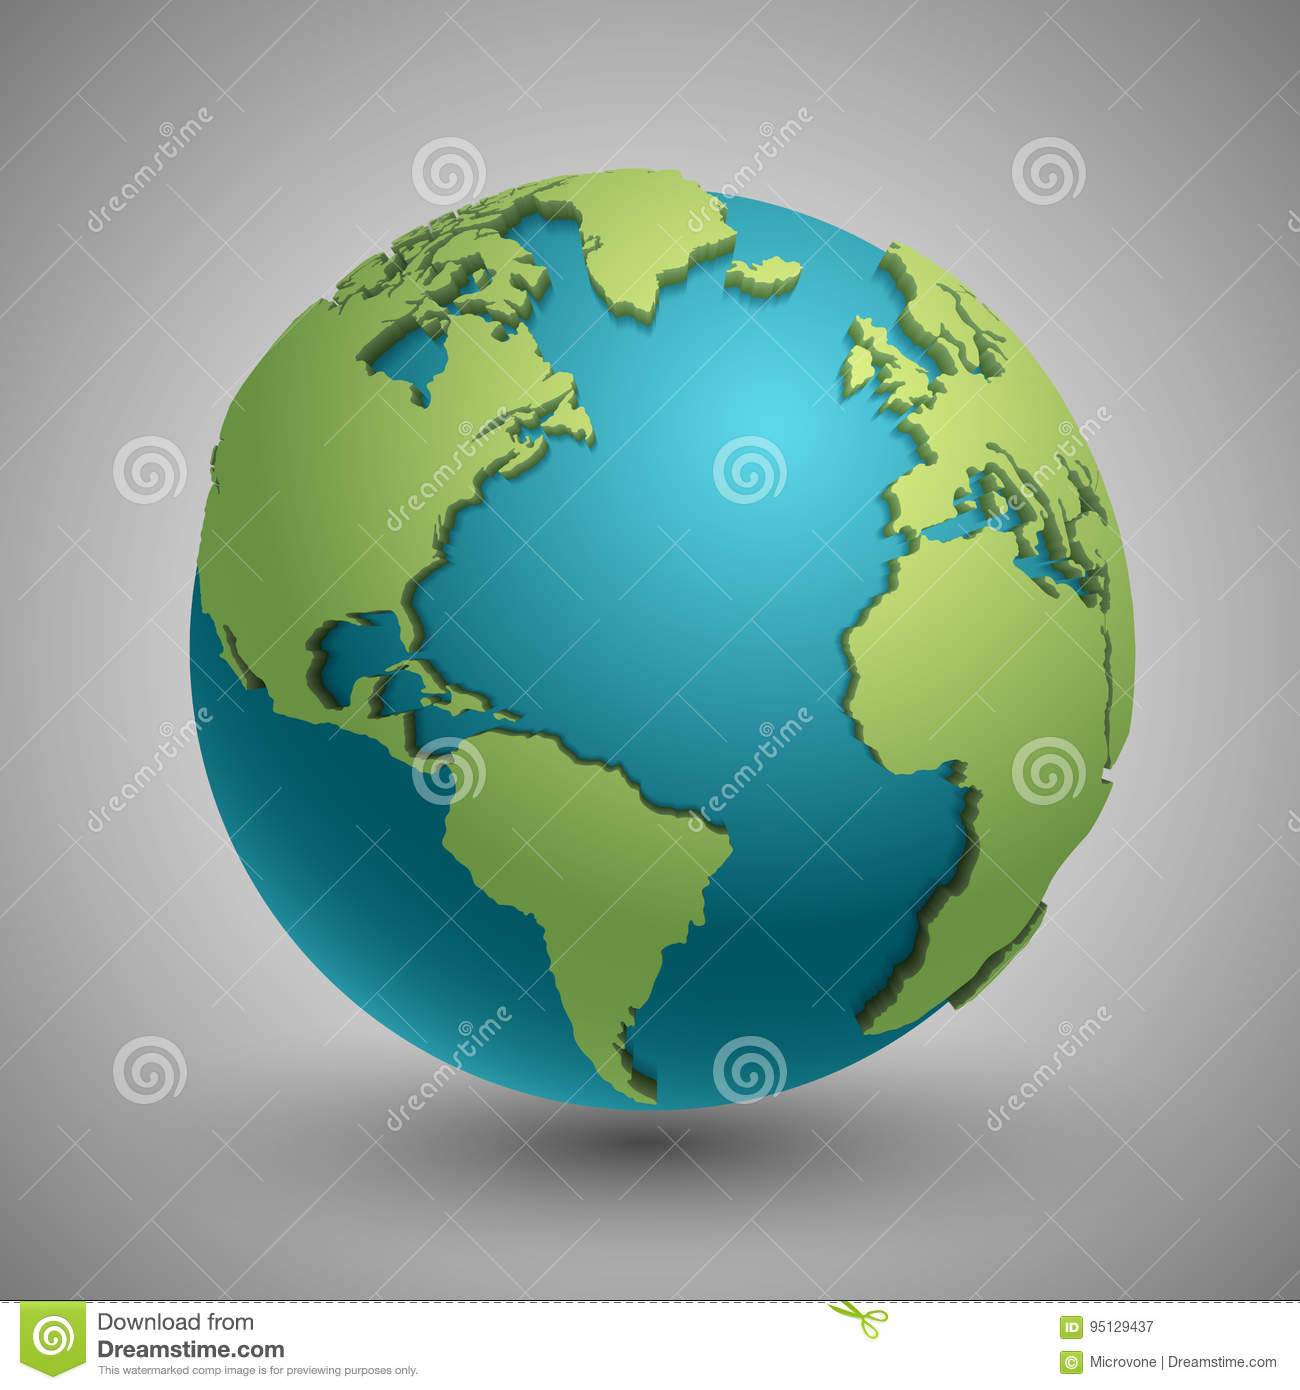 Earth globe with green continents modern 3d world map concept stock download earth globe with green continents modern 3d world map concept stock vector illustration gumiabroncs Gallery